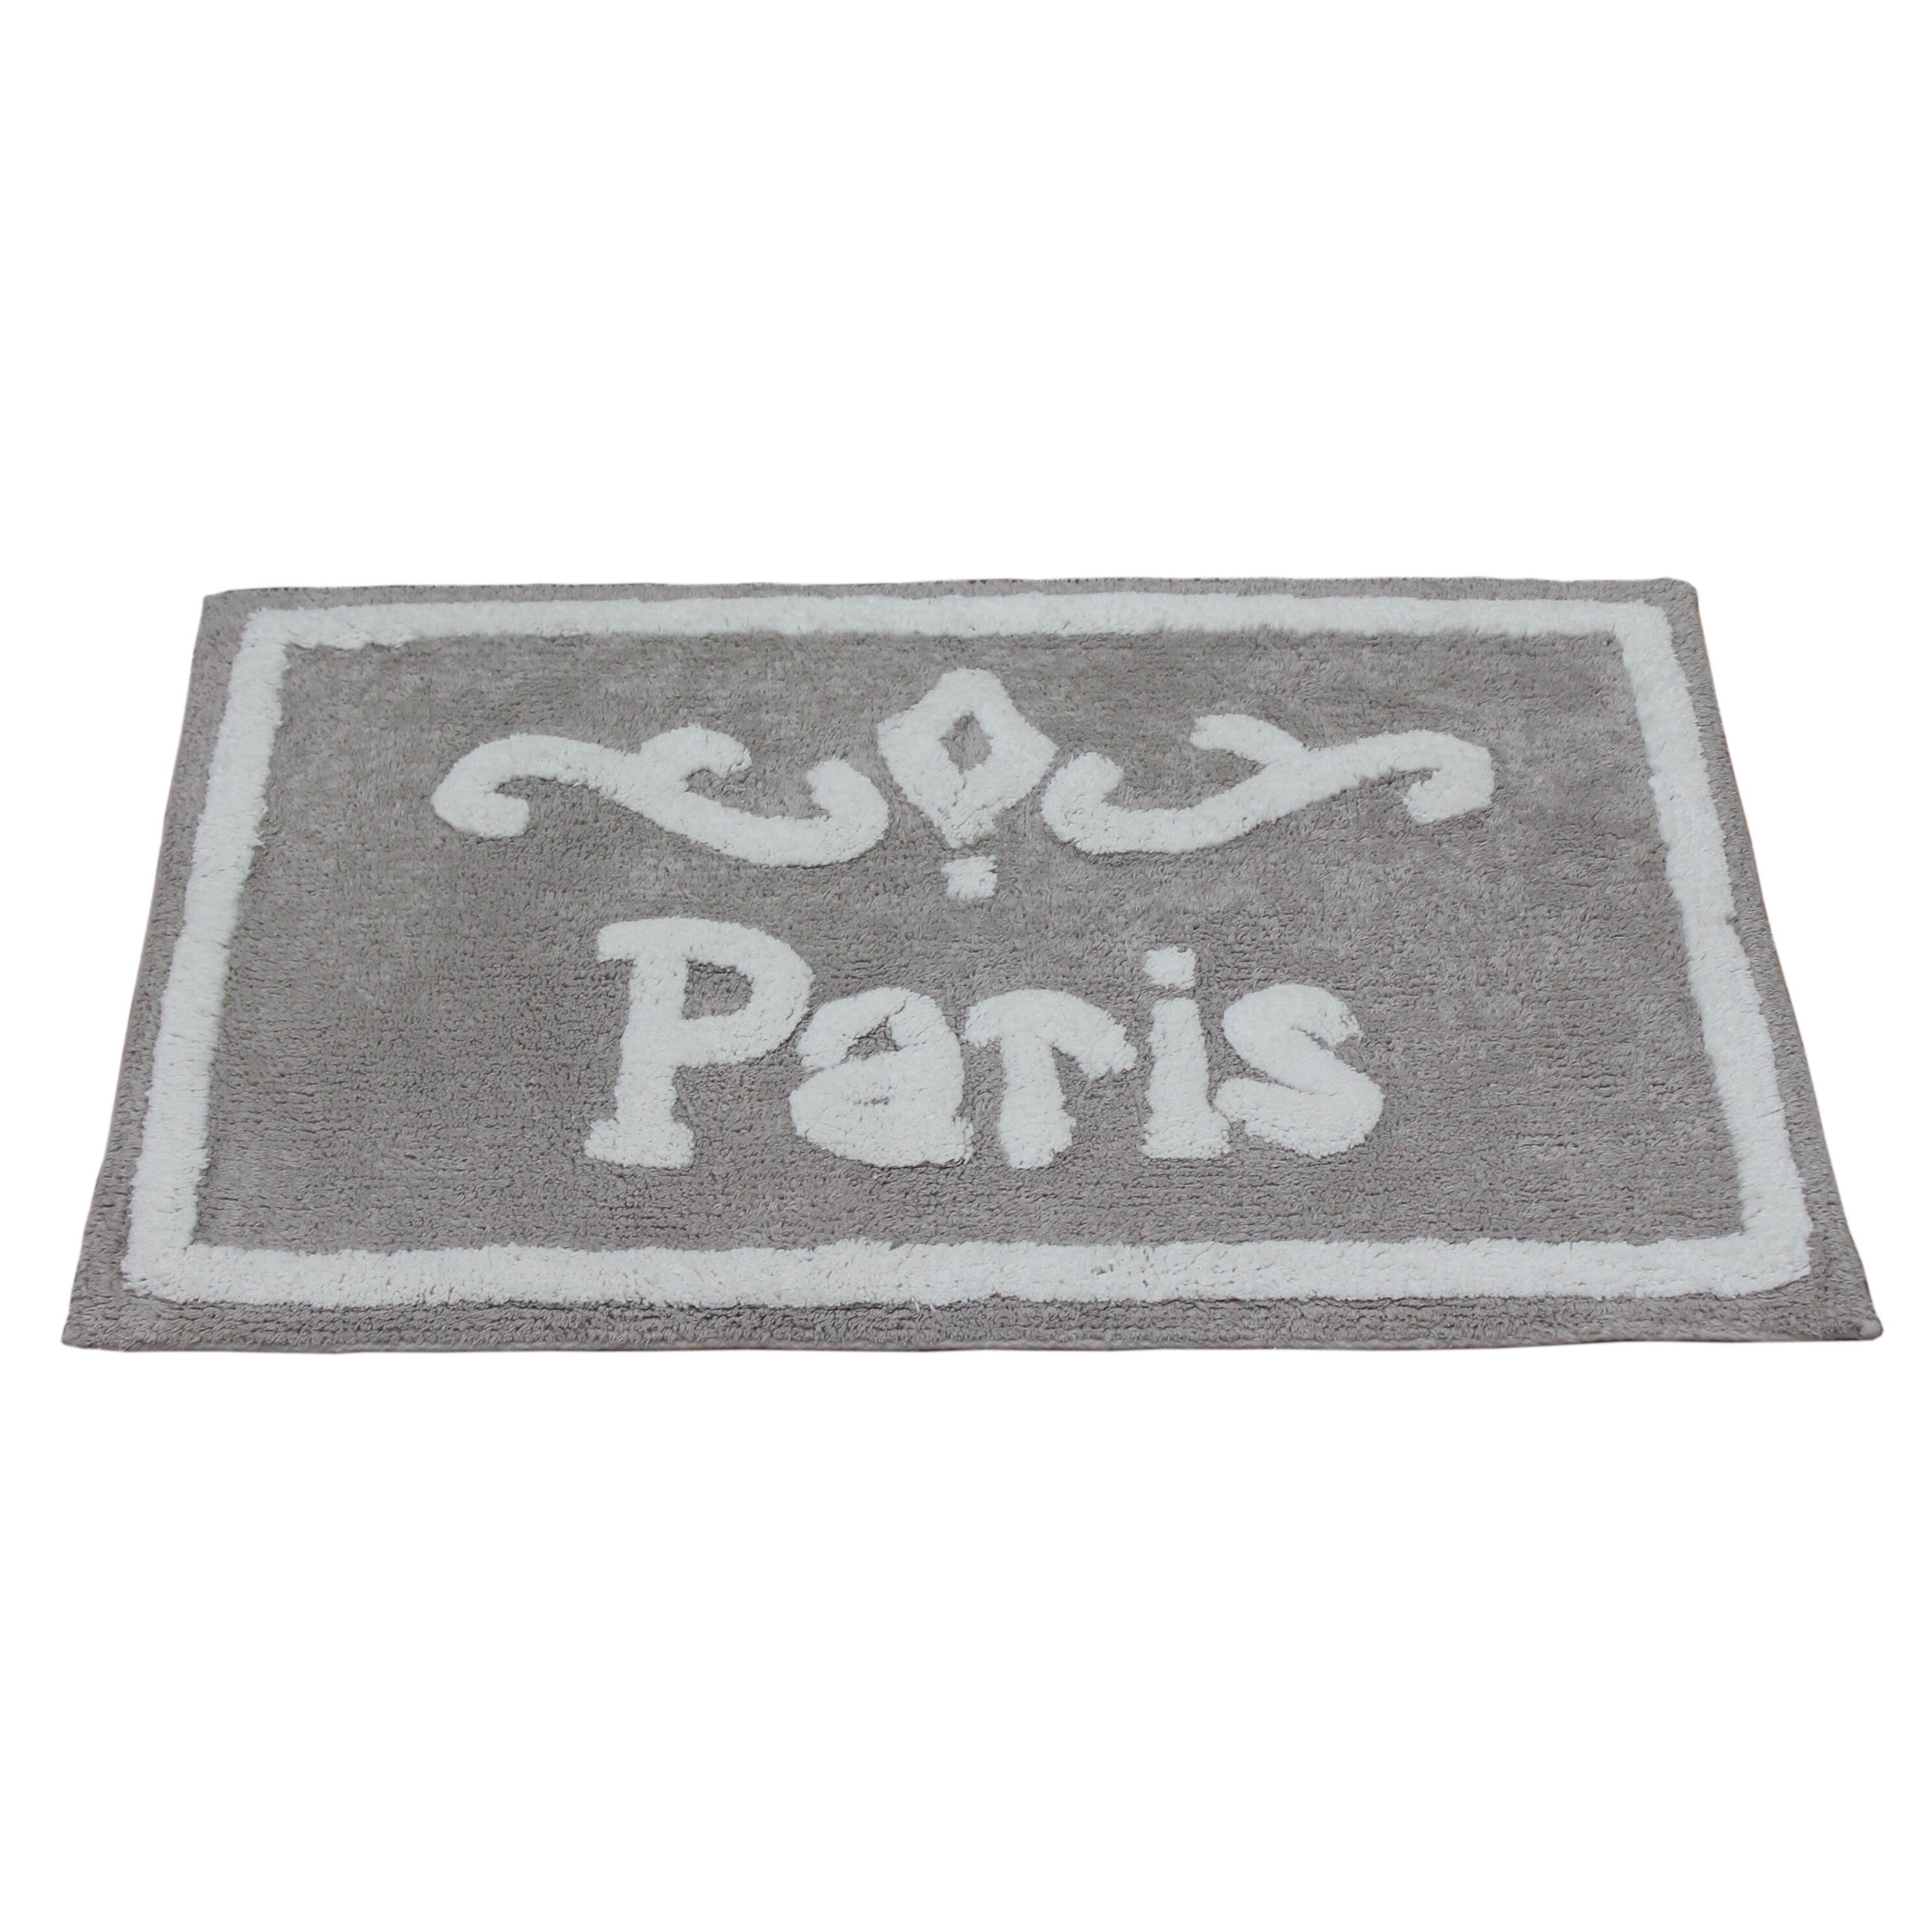 cosmic inc paris bath rug reviews wayfair With paris bathroom rug